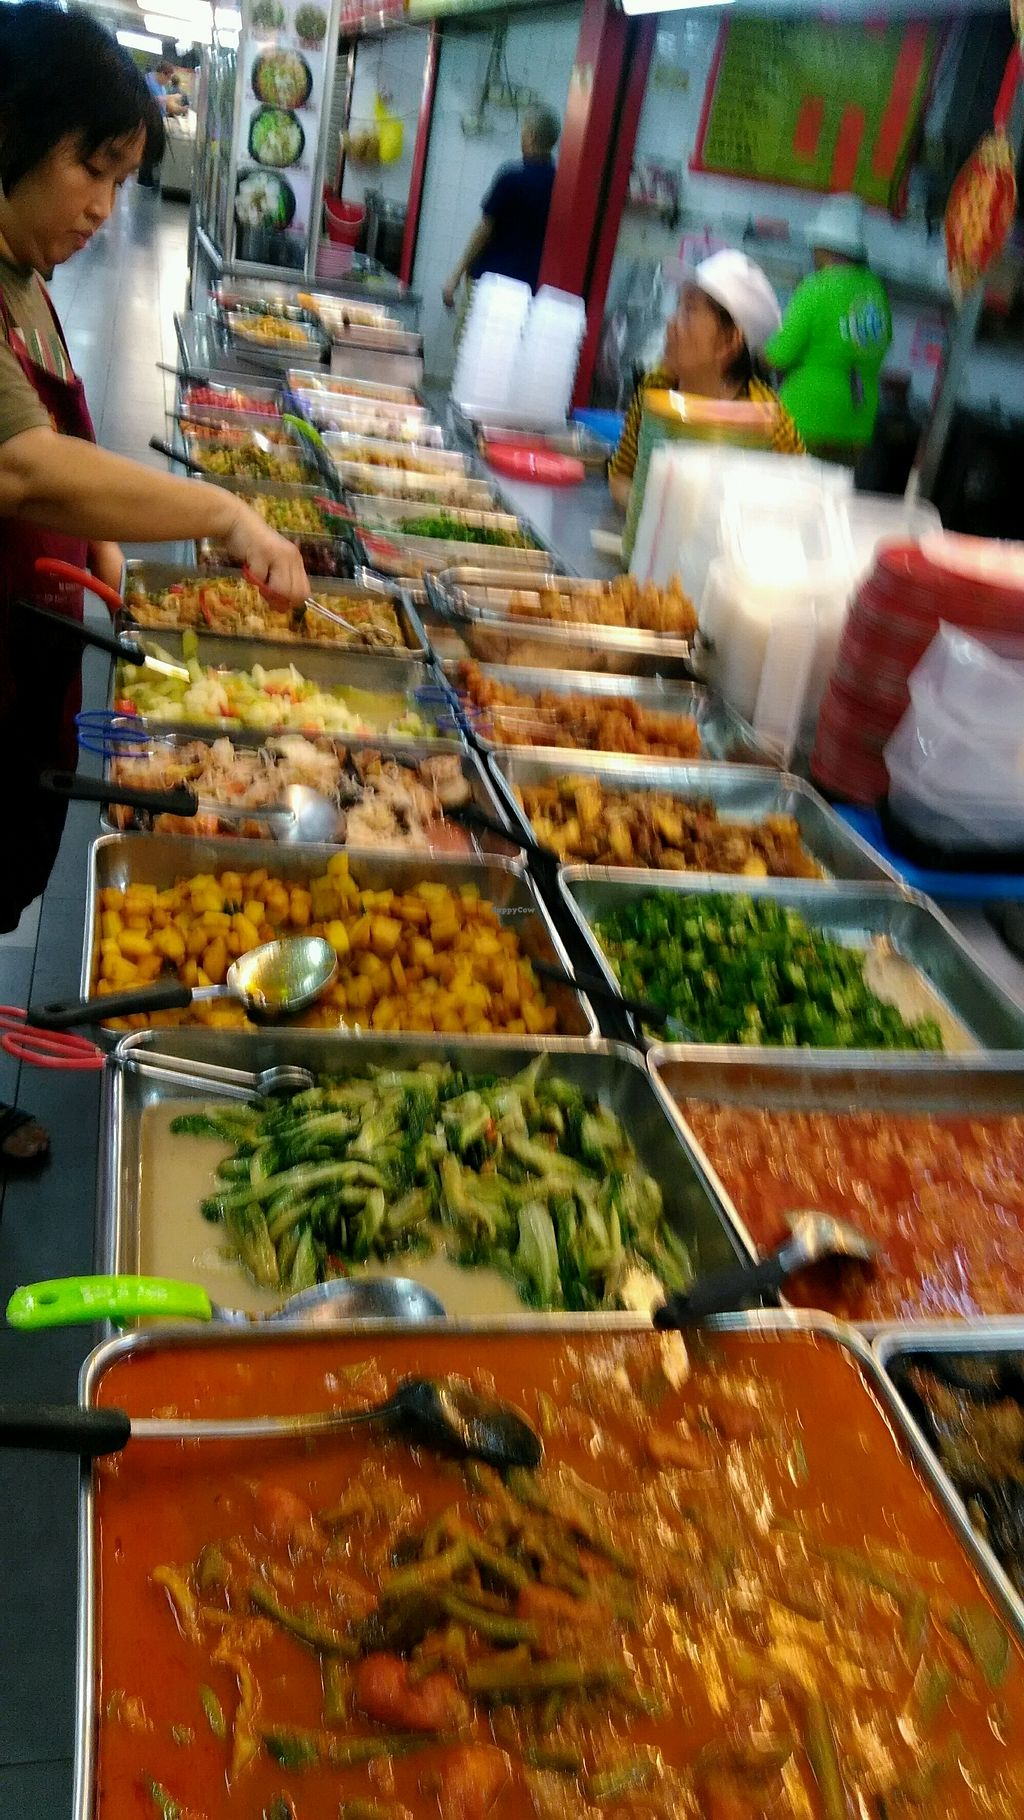 """Photo of Le Tian Vegetarian Stall  by <a href=""""/members/profile/PeterRollett"""">PeterRollett</a> <br/>today 11th April 2018 <br/> April 11, 2018  - <a href='/contact/abuse/image/17293/383641'>Report</a>"""